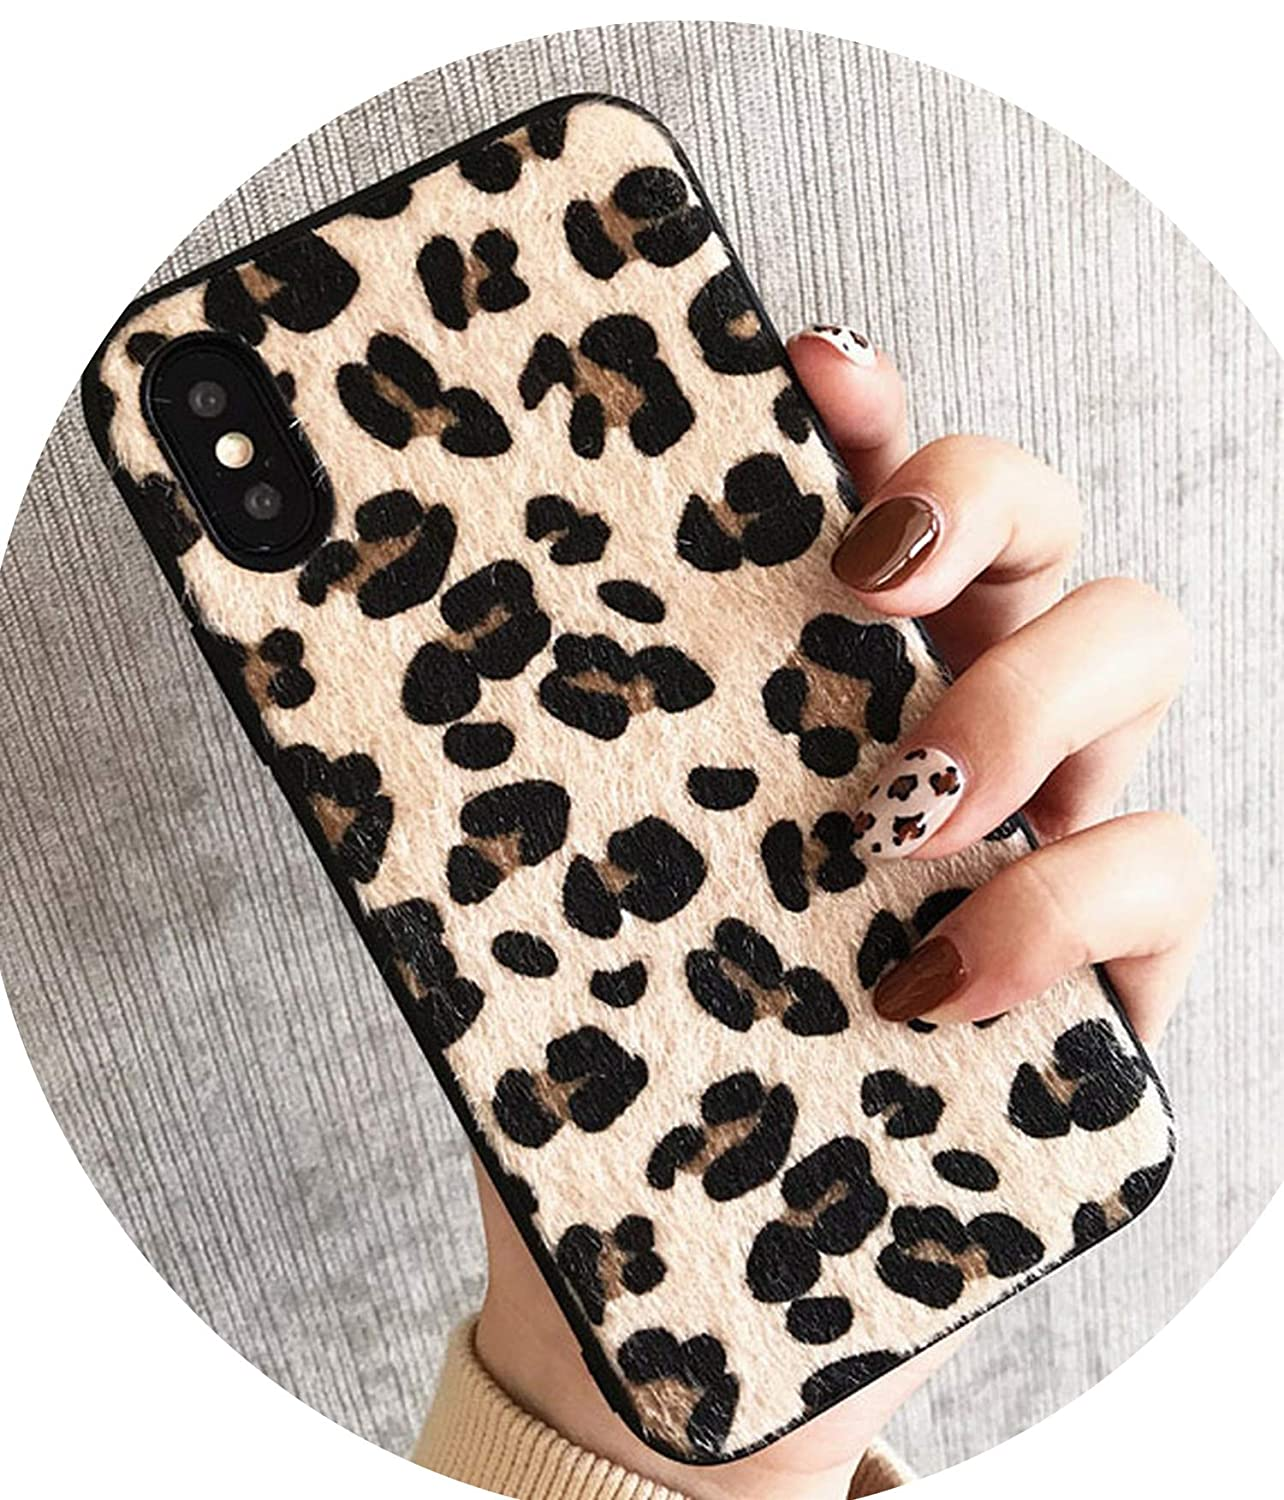 ins Leopard x/xs max Mobile Phone Shell iphone7plus/8/6s Plush Cloth XR Trend Female,misebao,for iPhone 6 6S